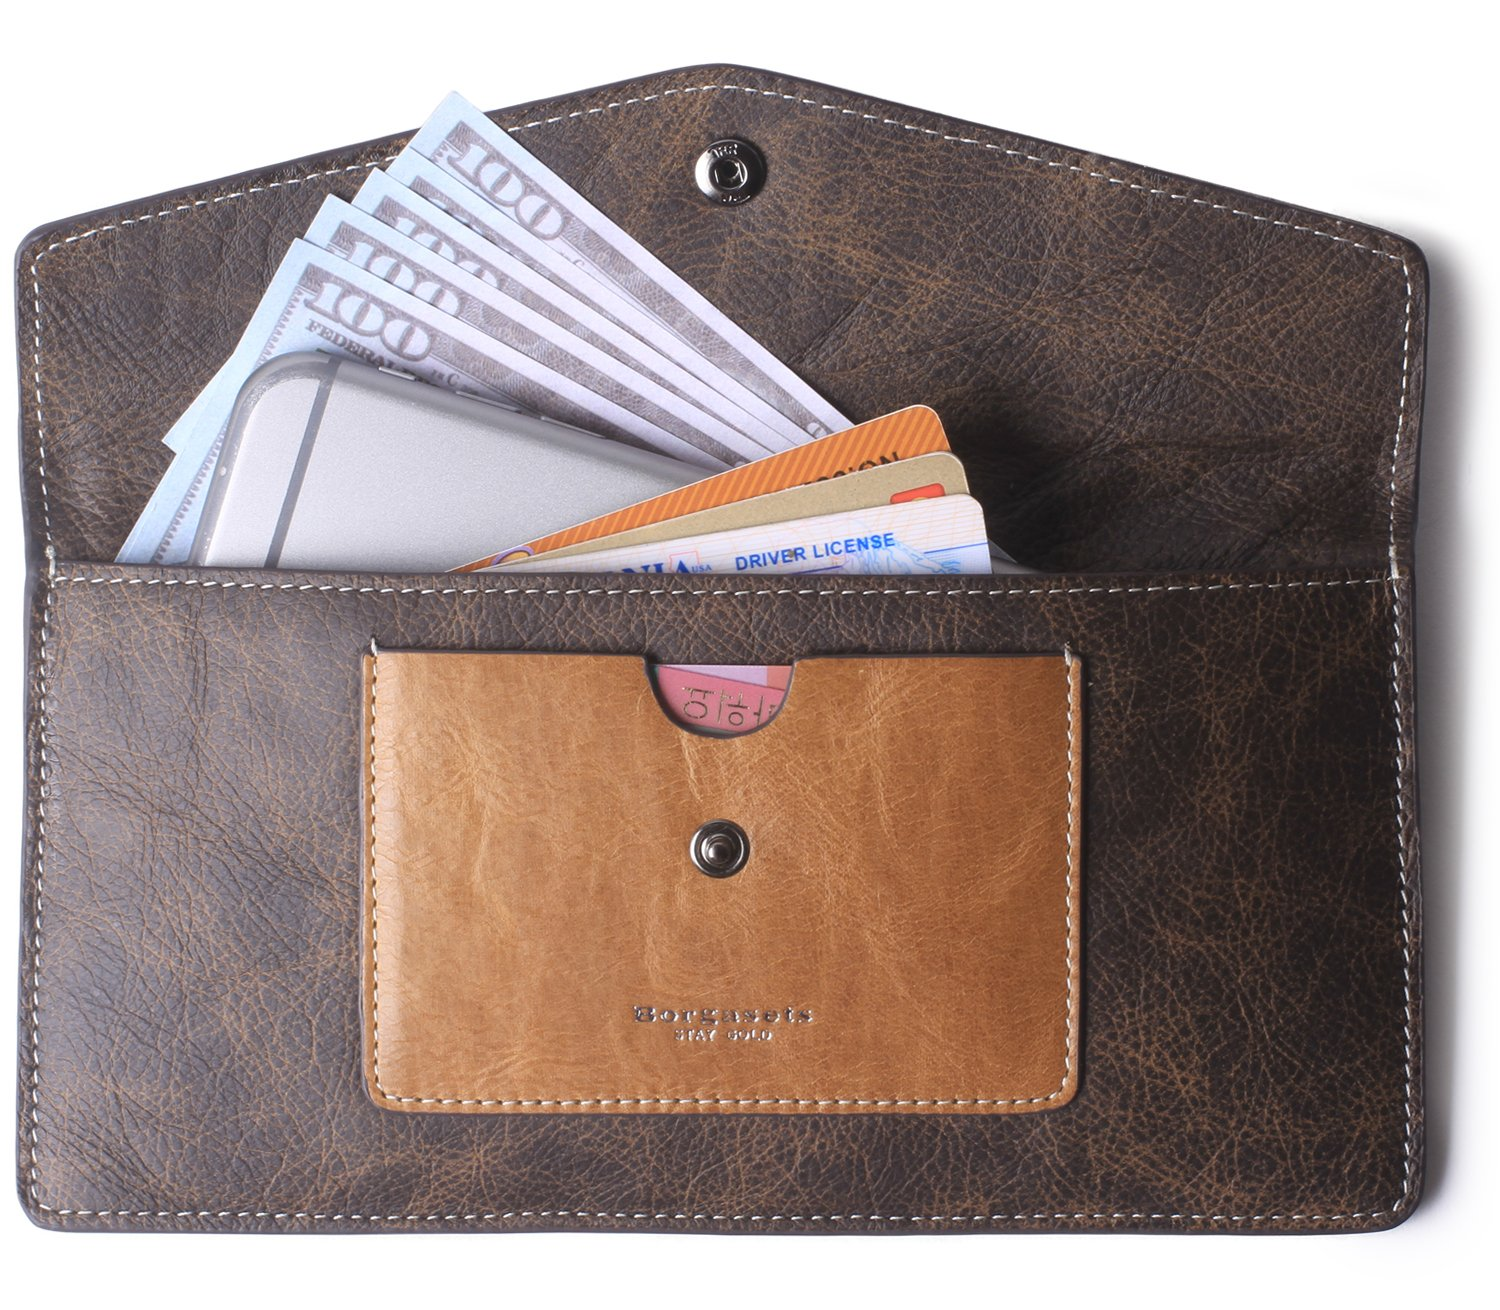 Borgasets Women's Wallet Leather RFID Blocking Ultra-thin Envelope Ladies Purse Travel Clutch with ID Card Holder and Phone Pocket Coffee